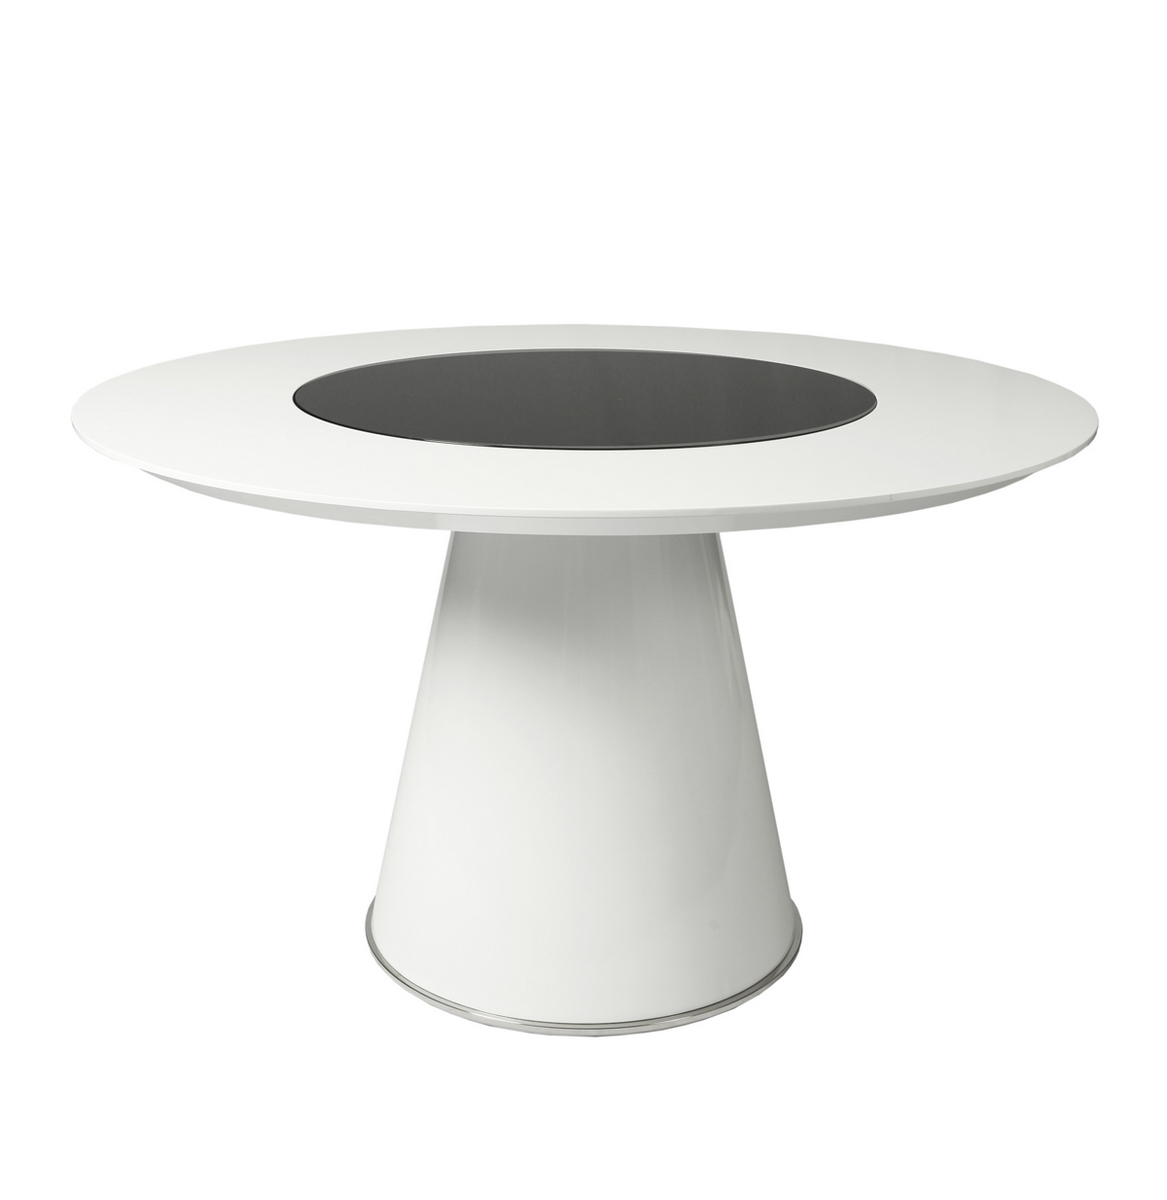 Pastel taranto 52 5 inch glossy white dining table w for 52 glass table top